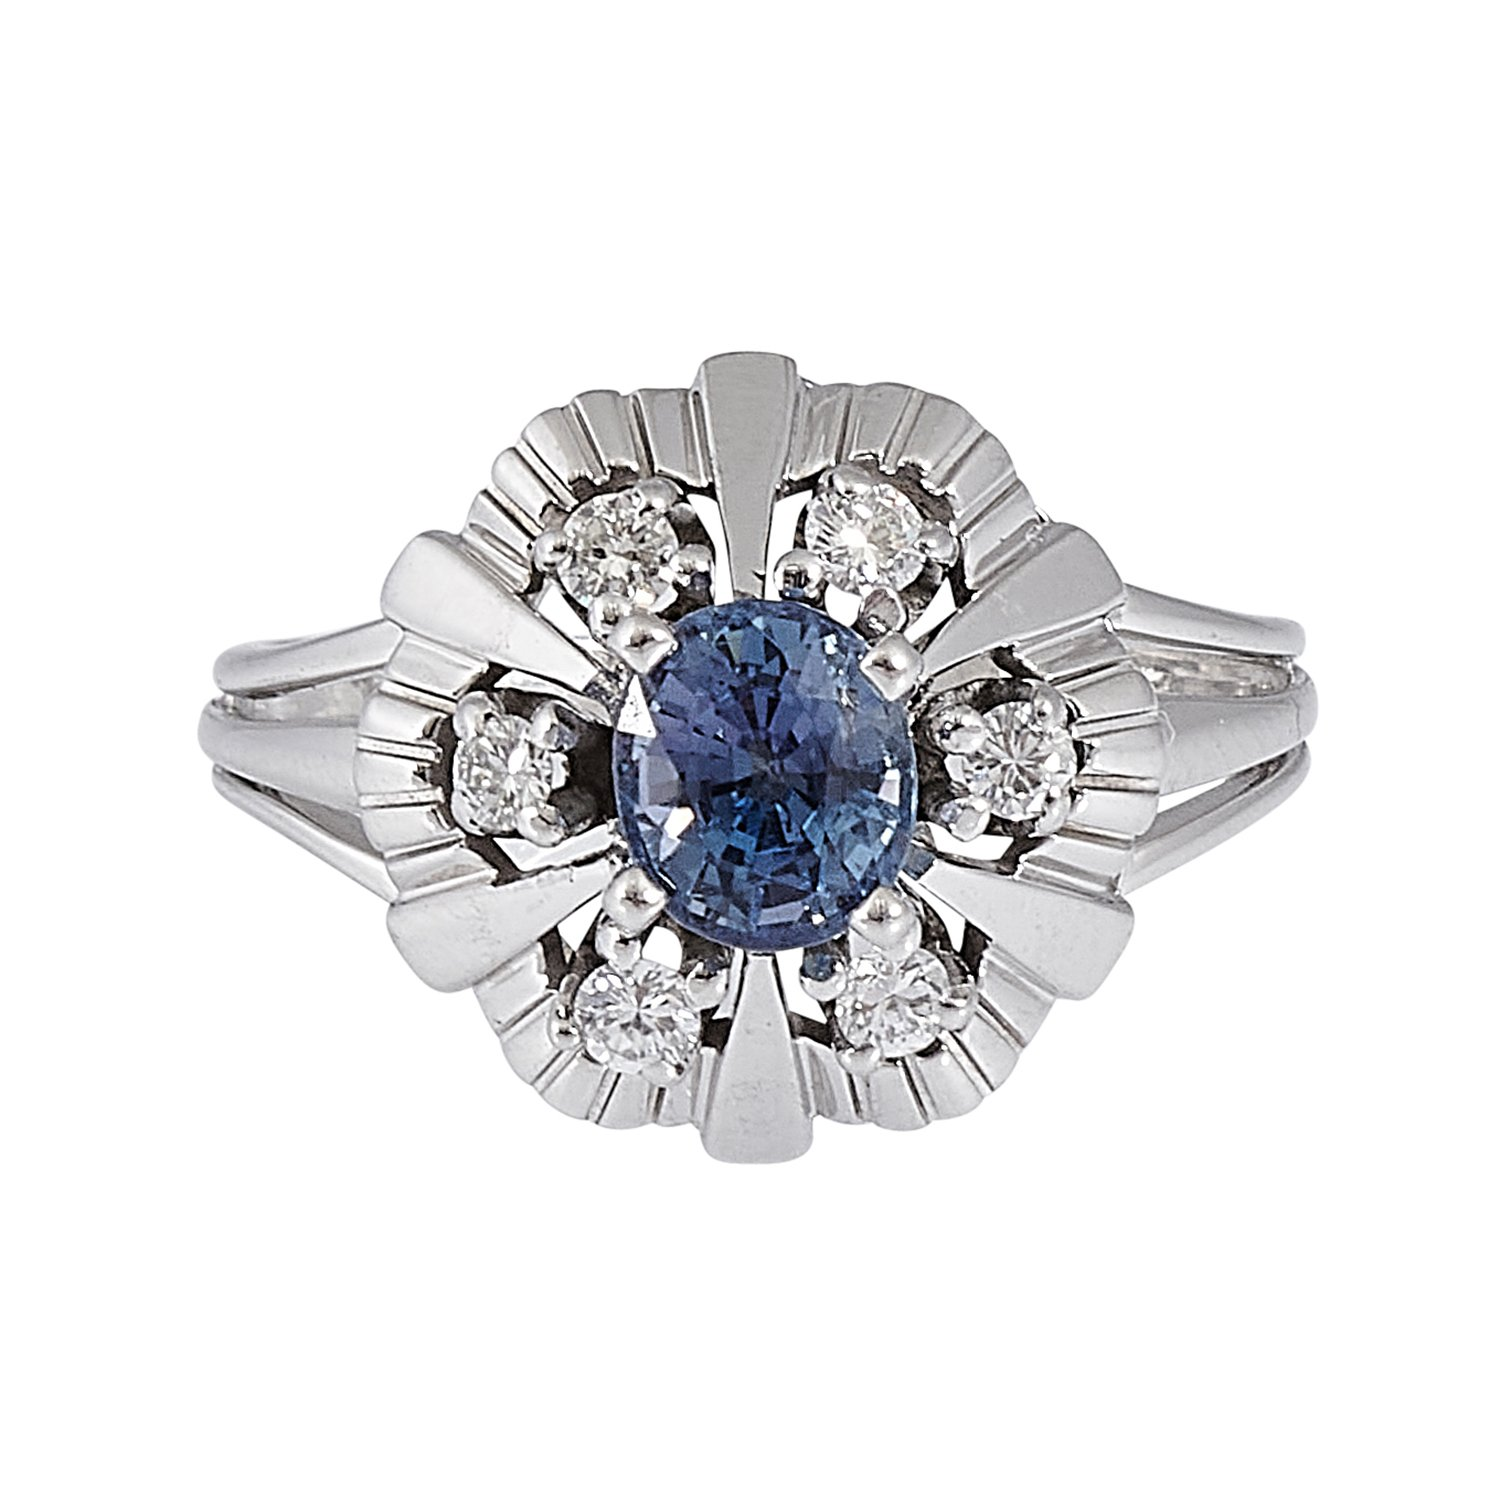 Contemporary white gold, sapphire and diamond ladies ring size: 5